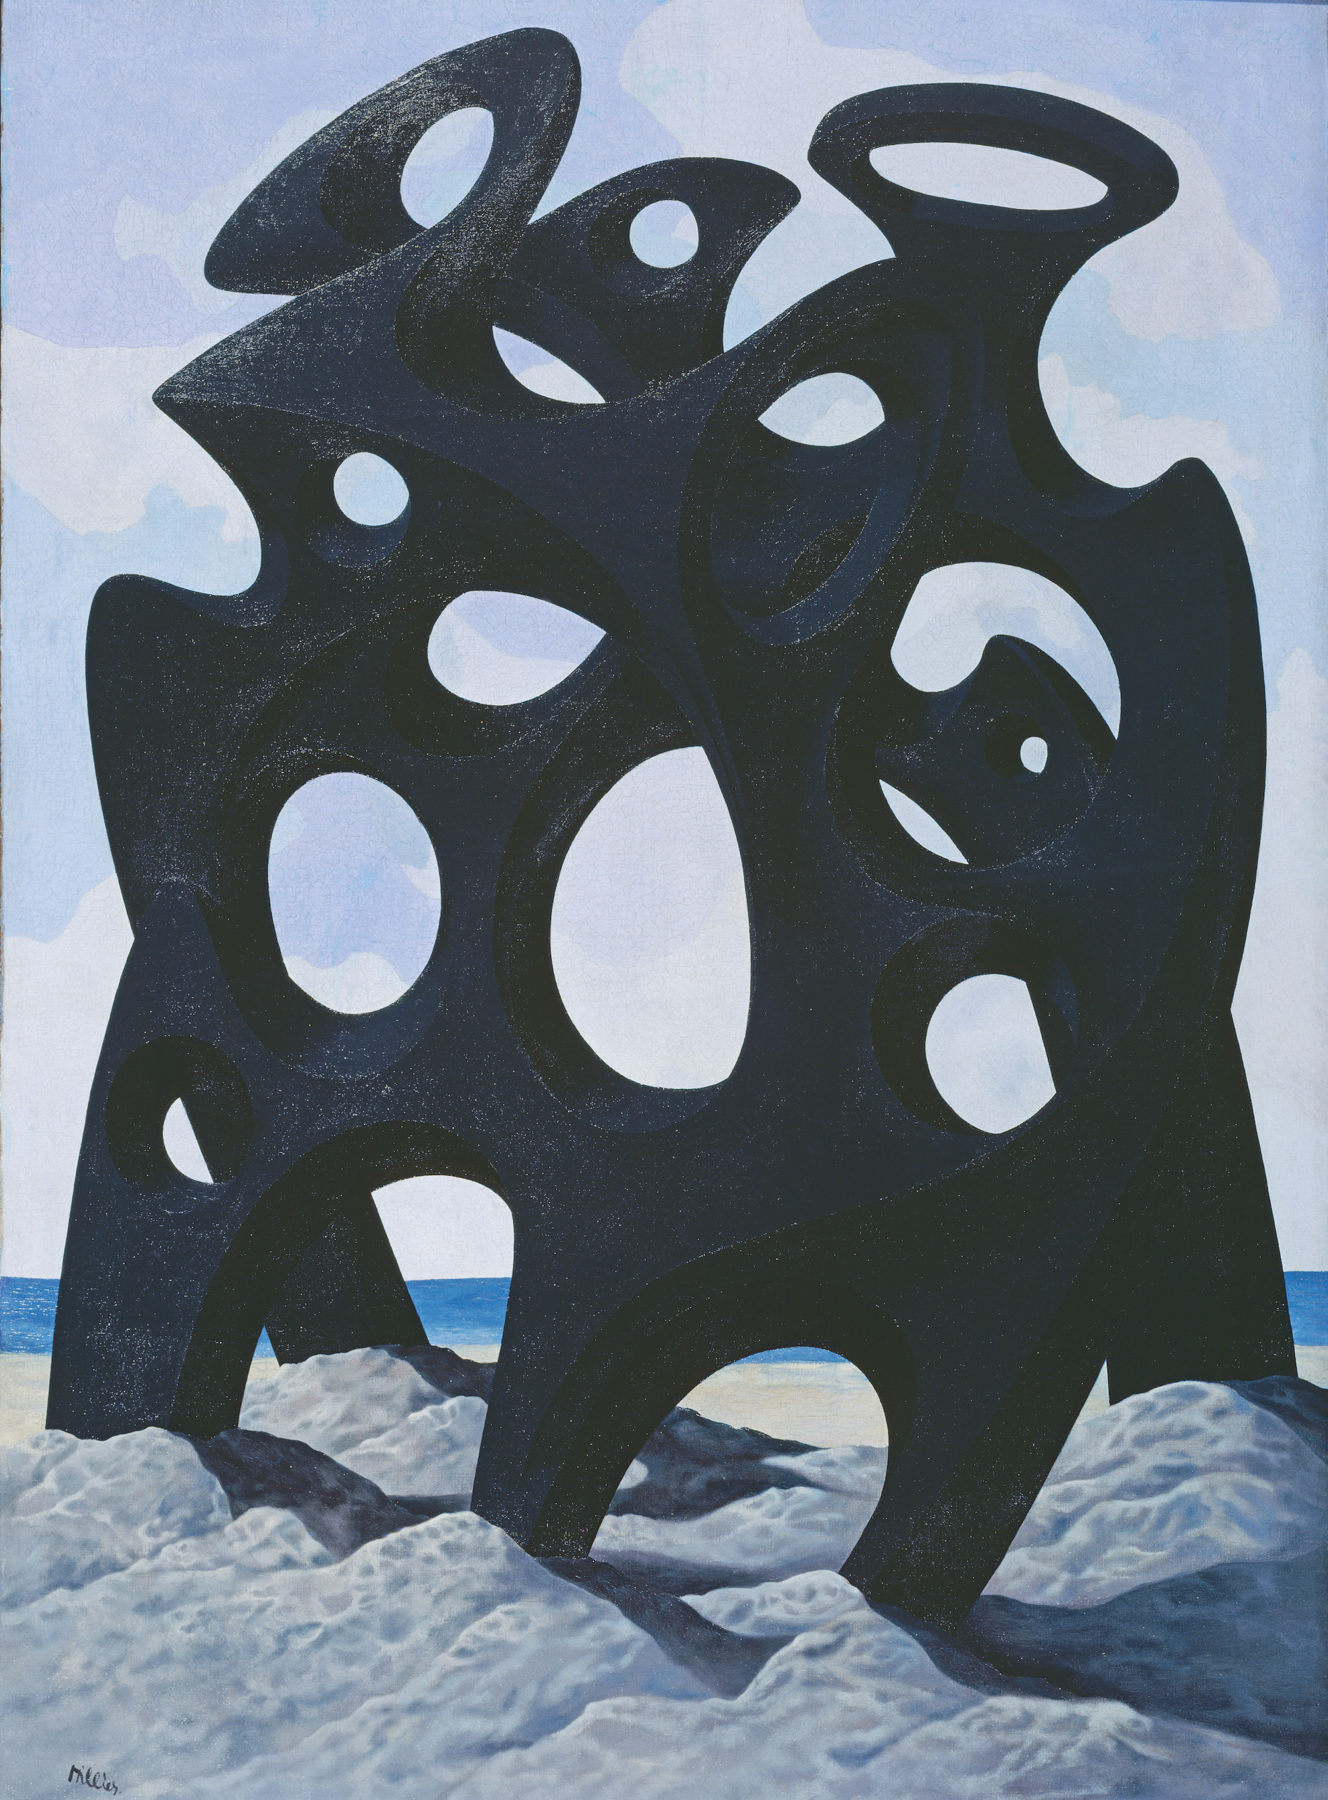 An undulating jet black sculptural form sits atop a rocky landscape, dominating the canvas. A pale blue sky with wispy clouds, sand and deep blue sea is shown through the large circular holes in the sculpture.